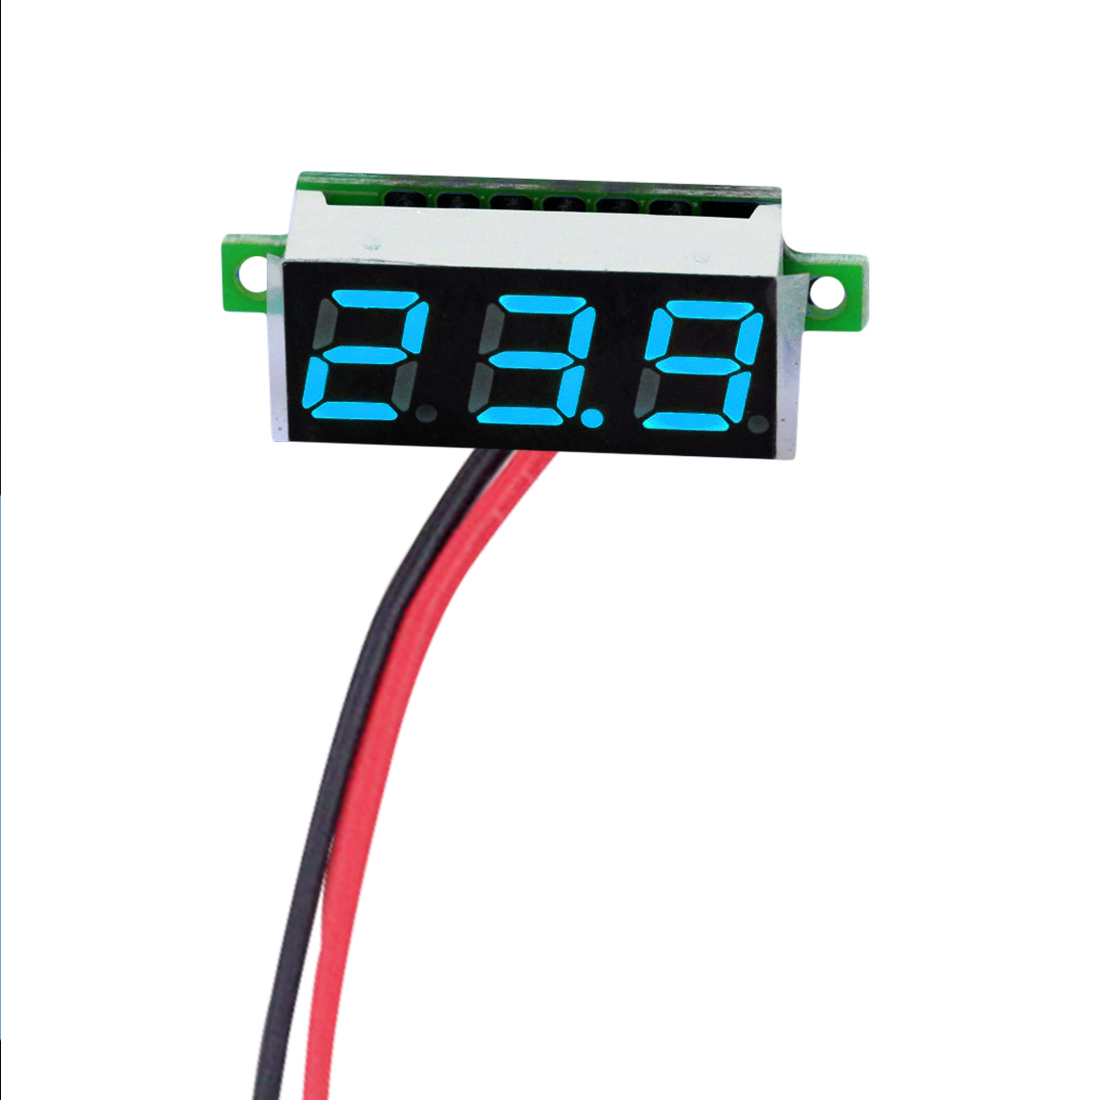 Mini Digital Voltmeter Voltage Tester Meter 0.28 Inch 2.5V-30V LED Screen Electronic Parts Accessories Digital Voltmeter mini voltmeter tester digital voltage test battery dc 0 30v red blue green auto car